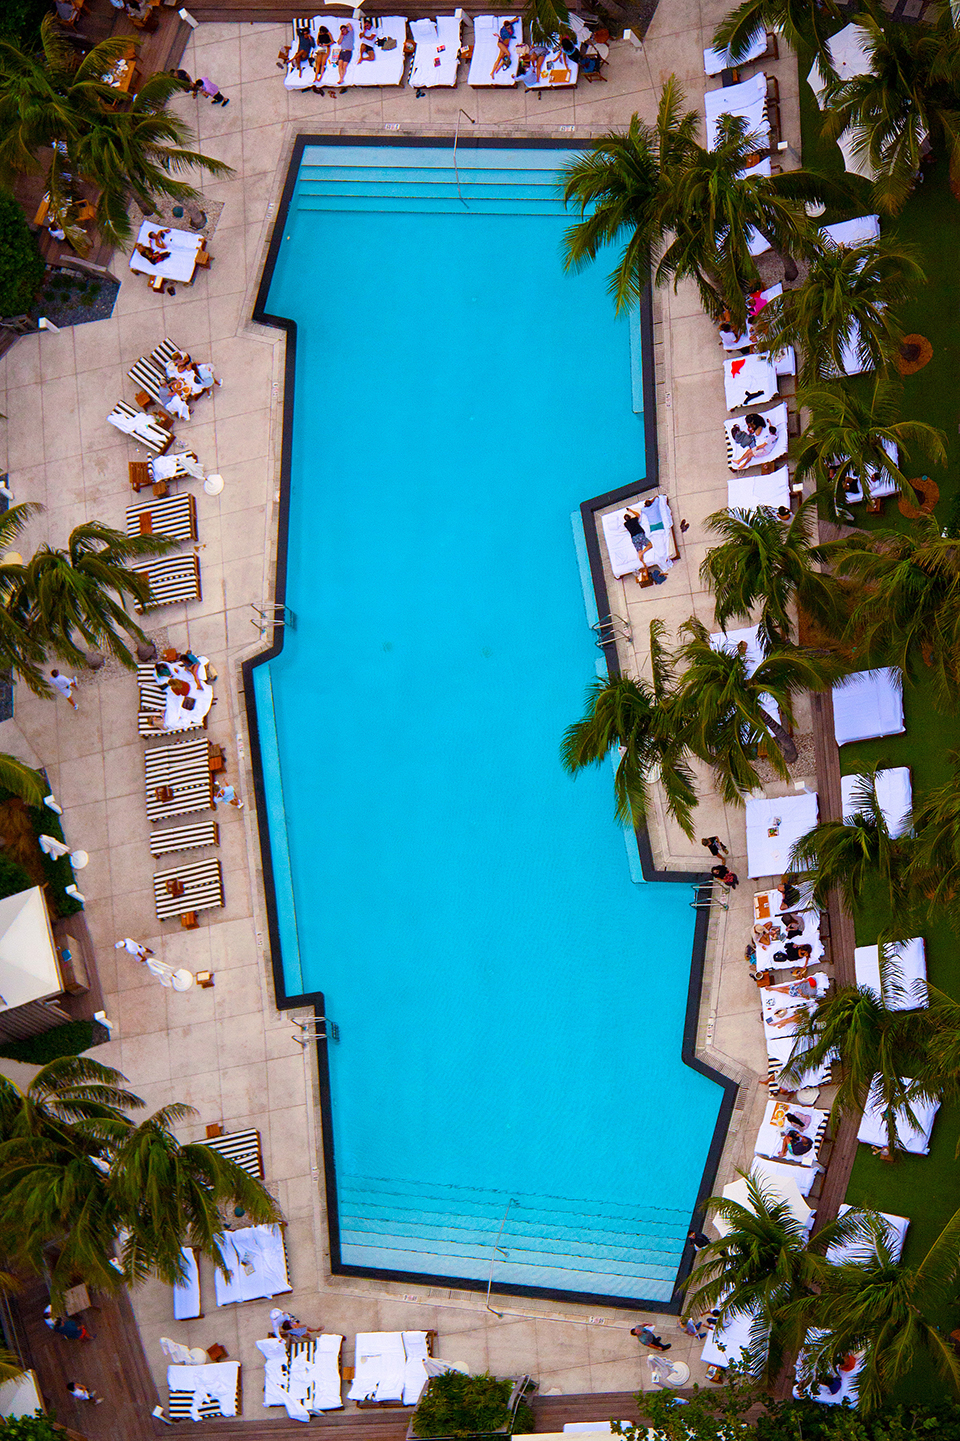 An edgy hotel pool in Miami, captured from up high. Photography by Gray Malin